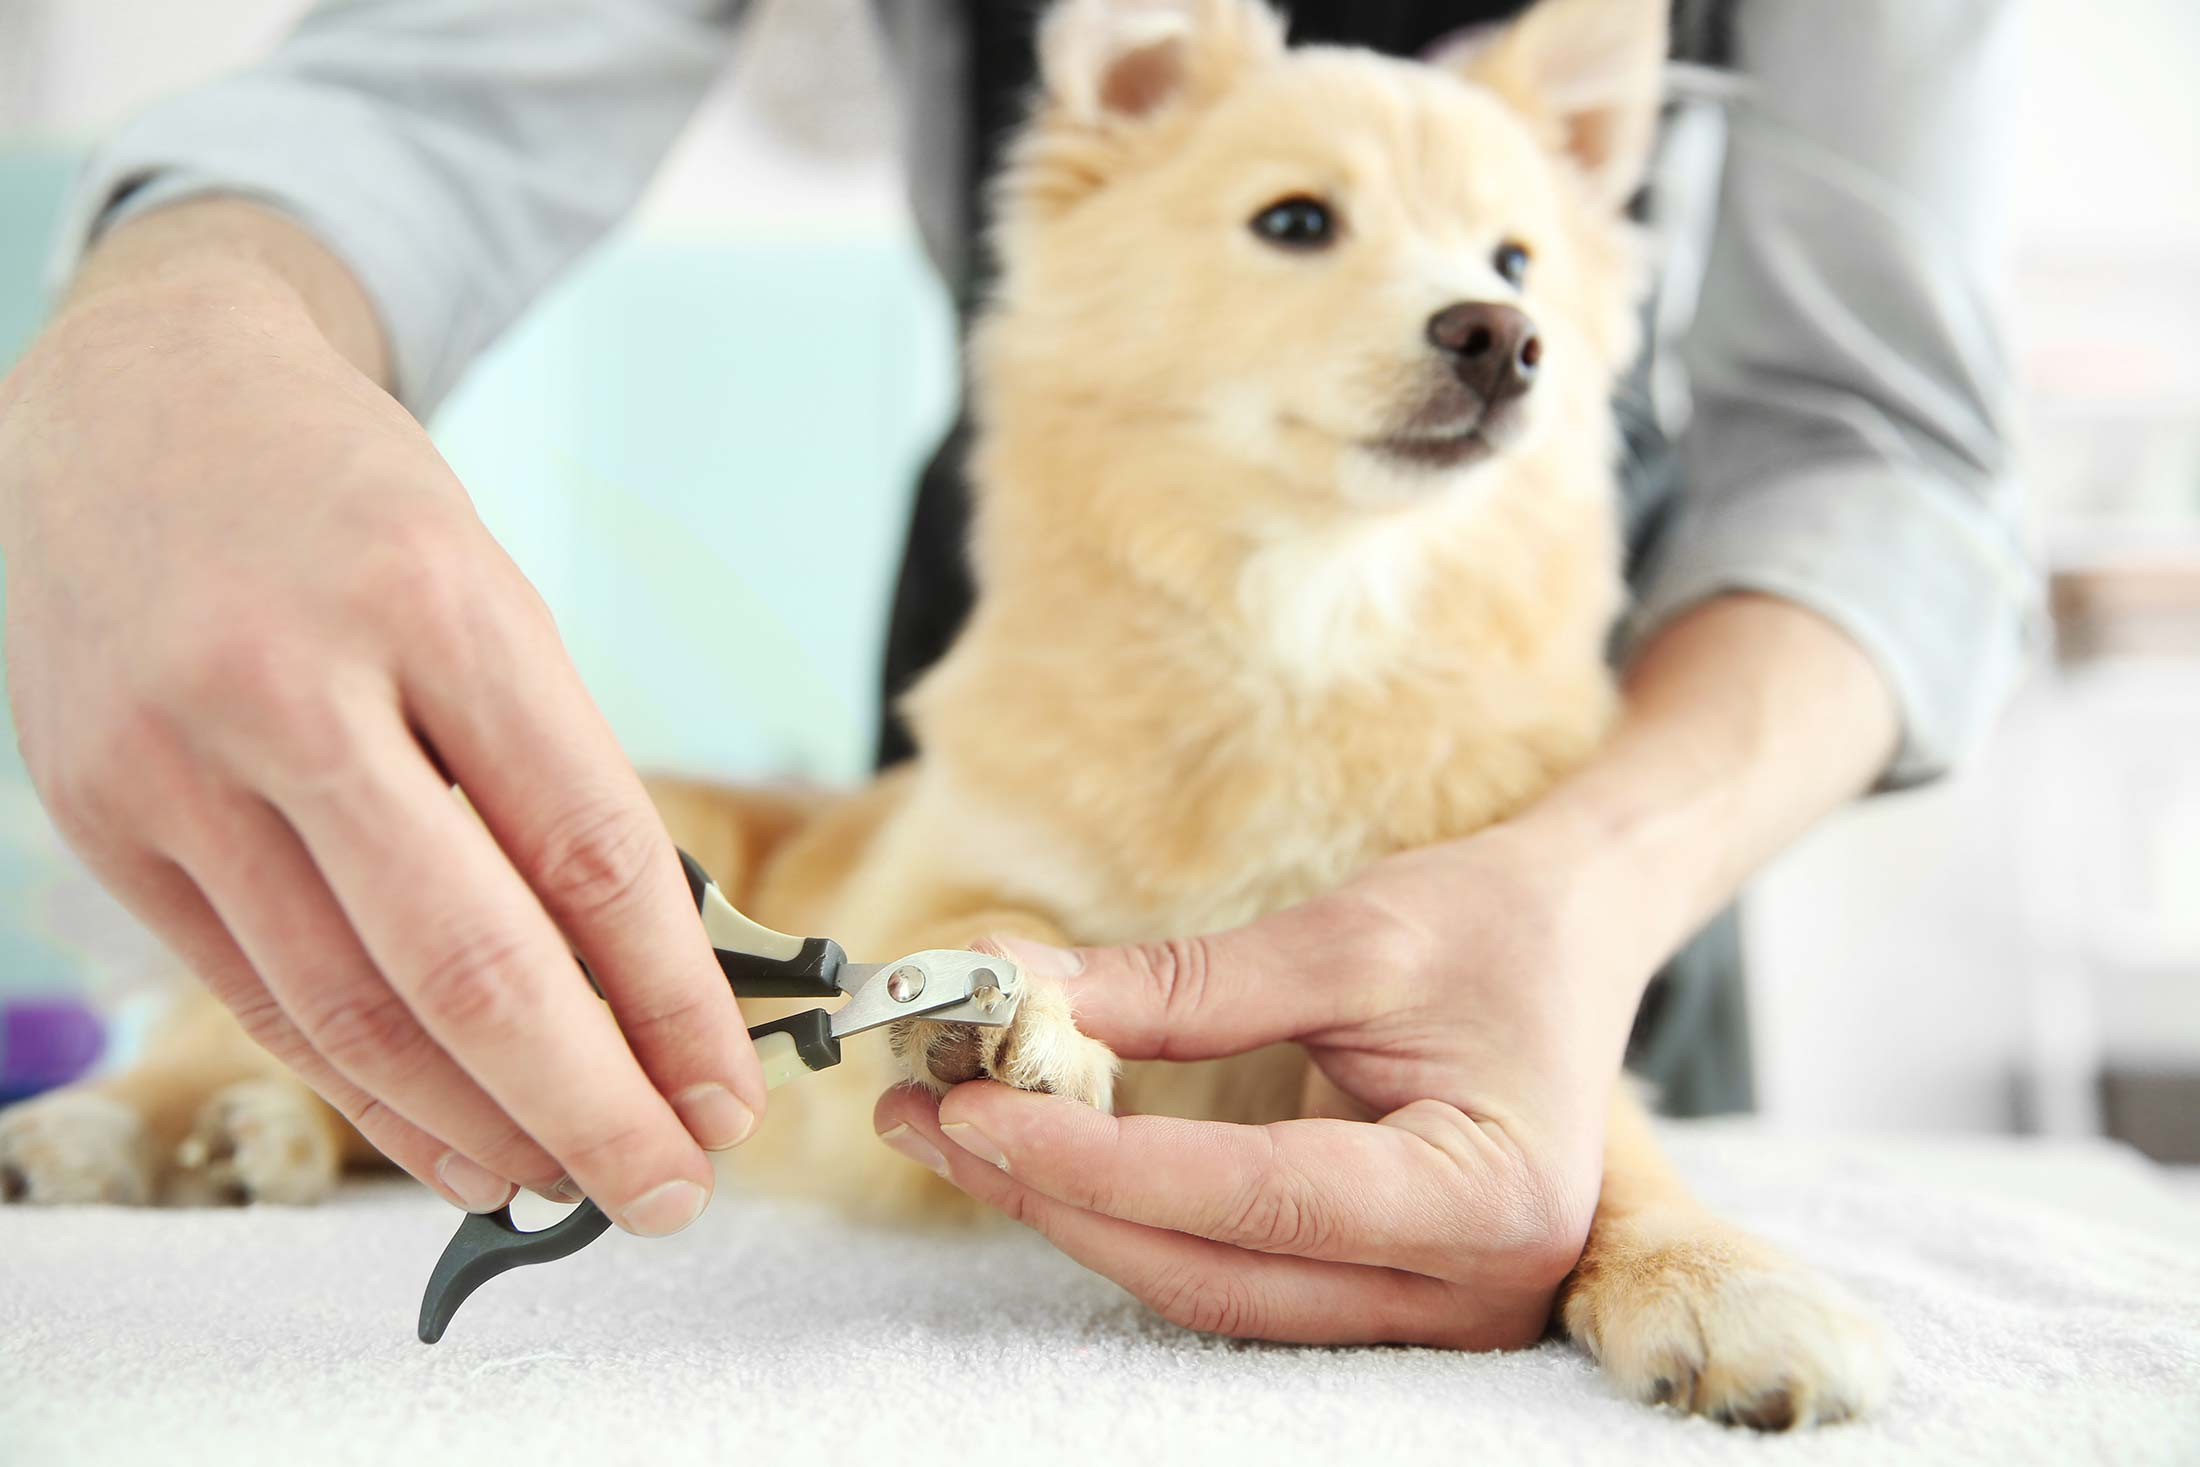 Nail trimming service